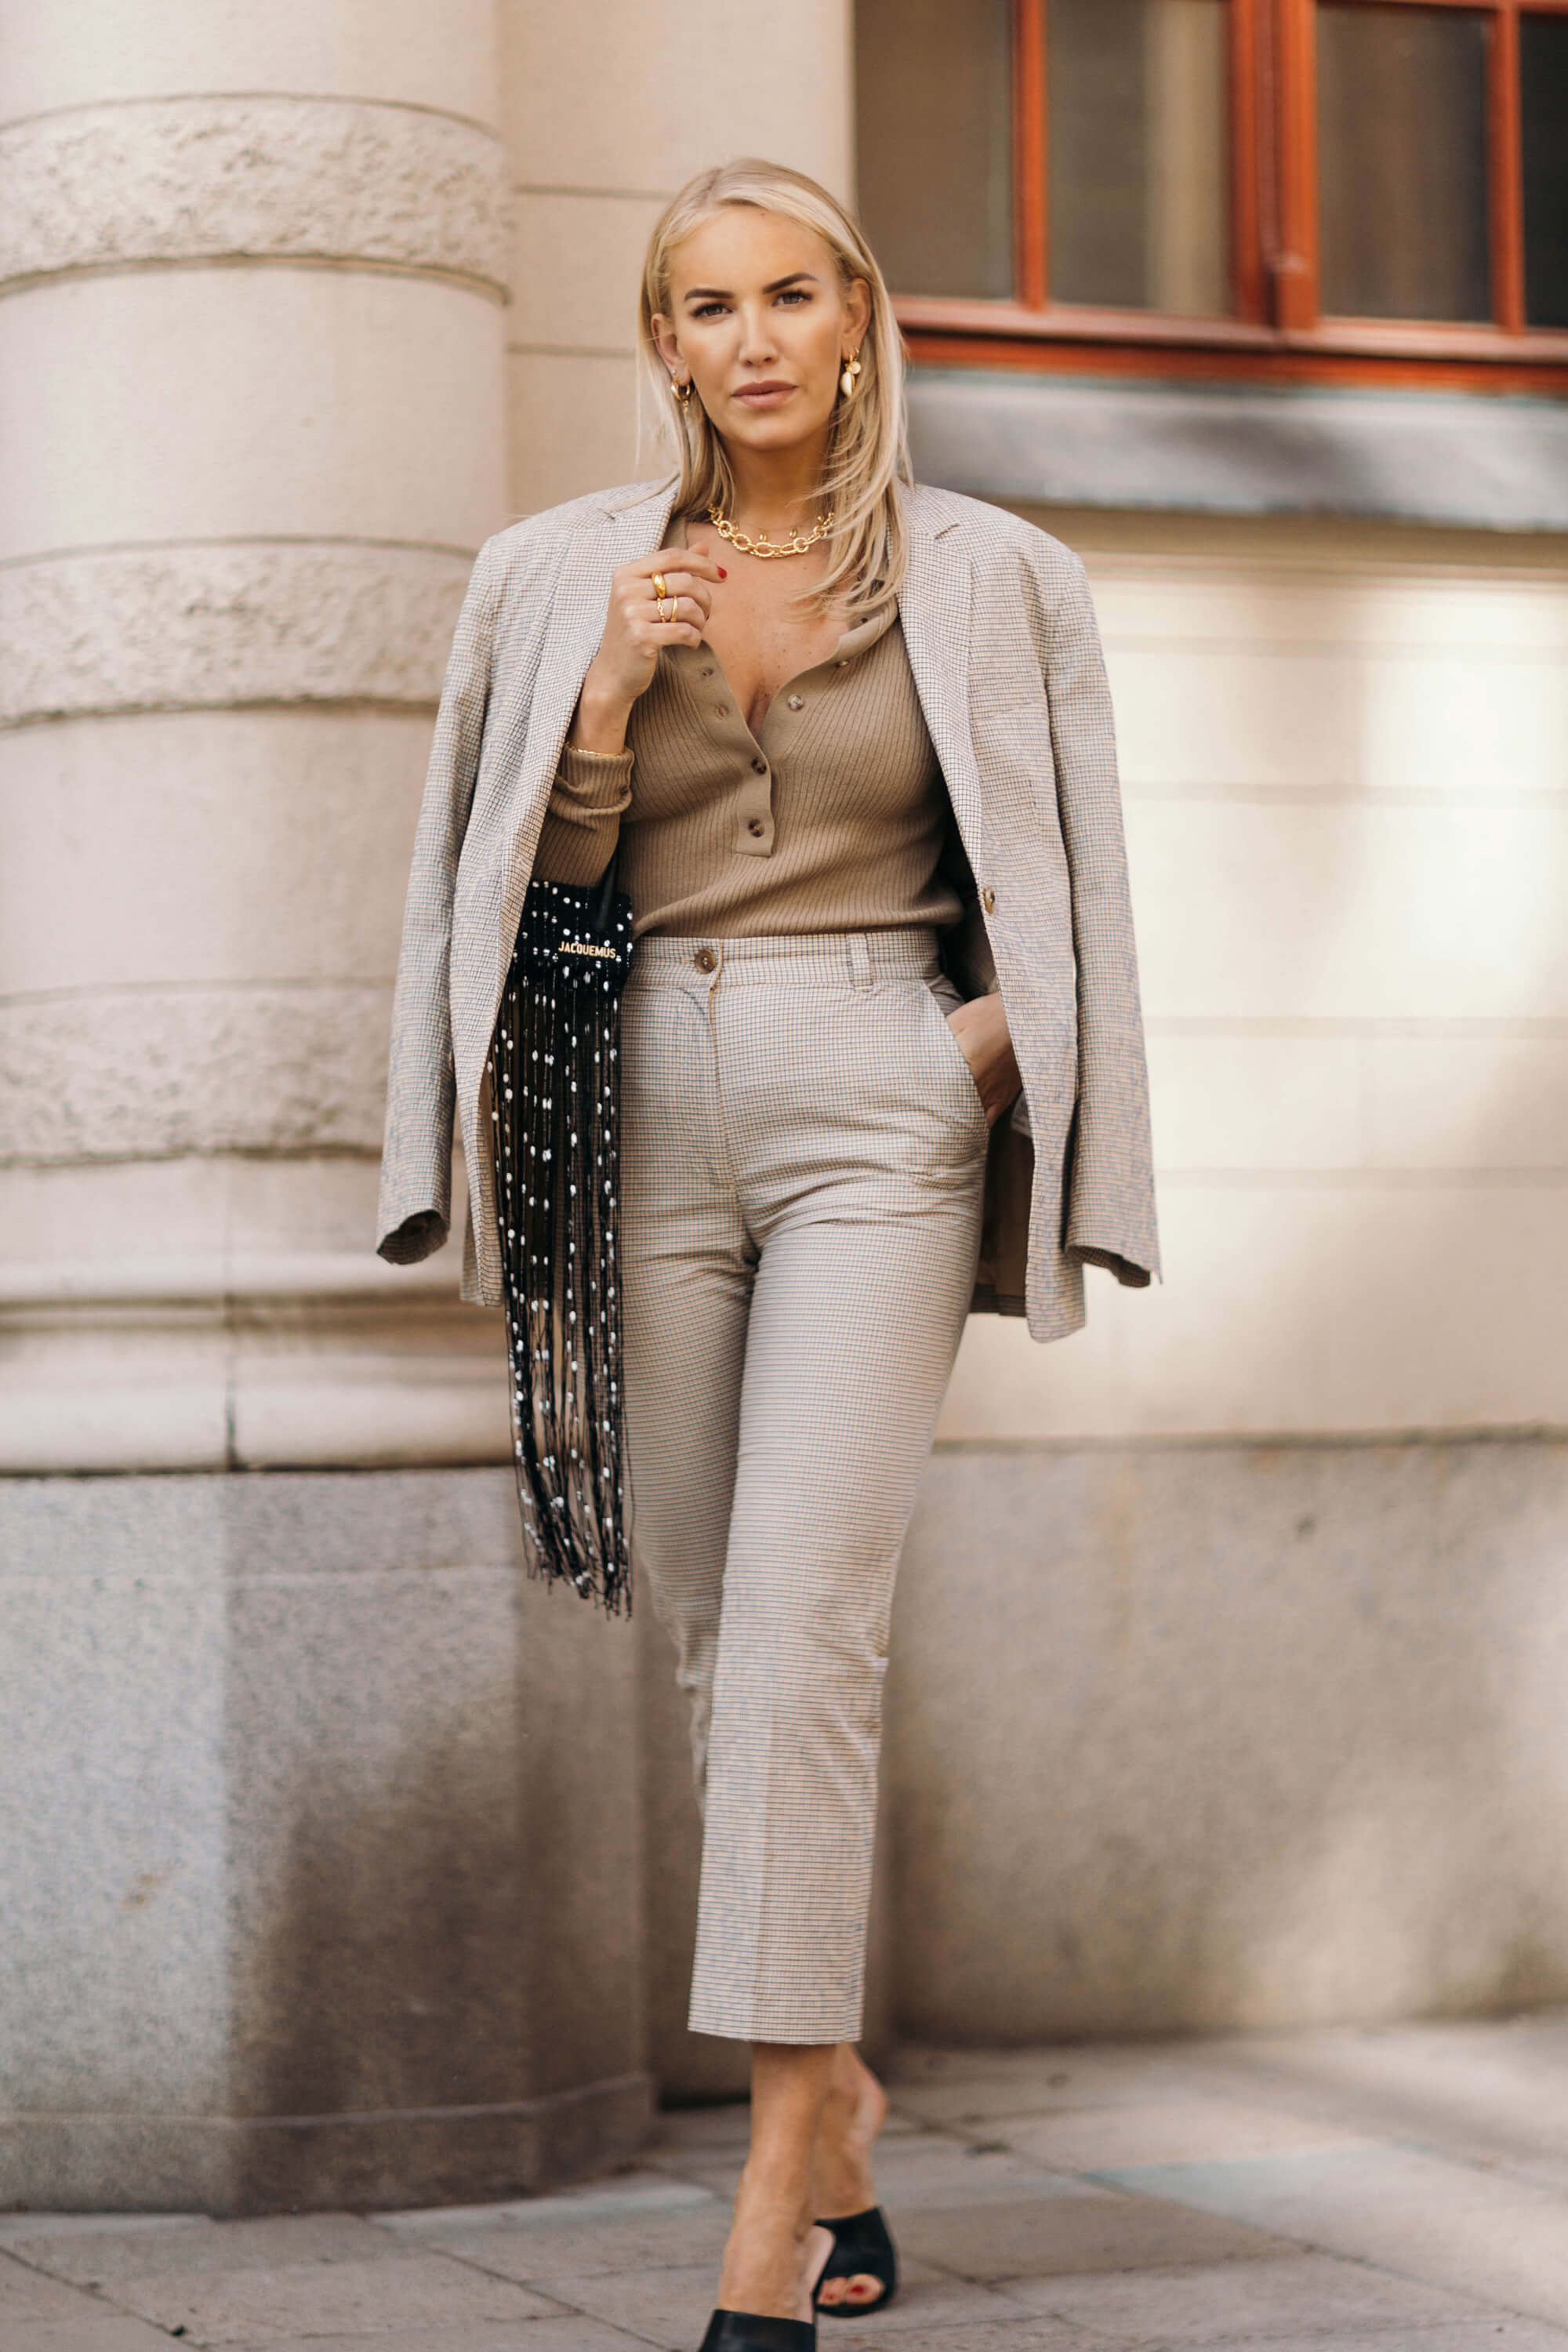 Petra-Tungarden-Outfits-36_pp